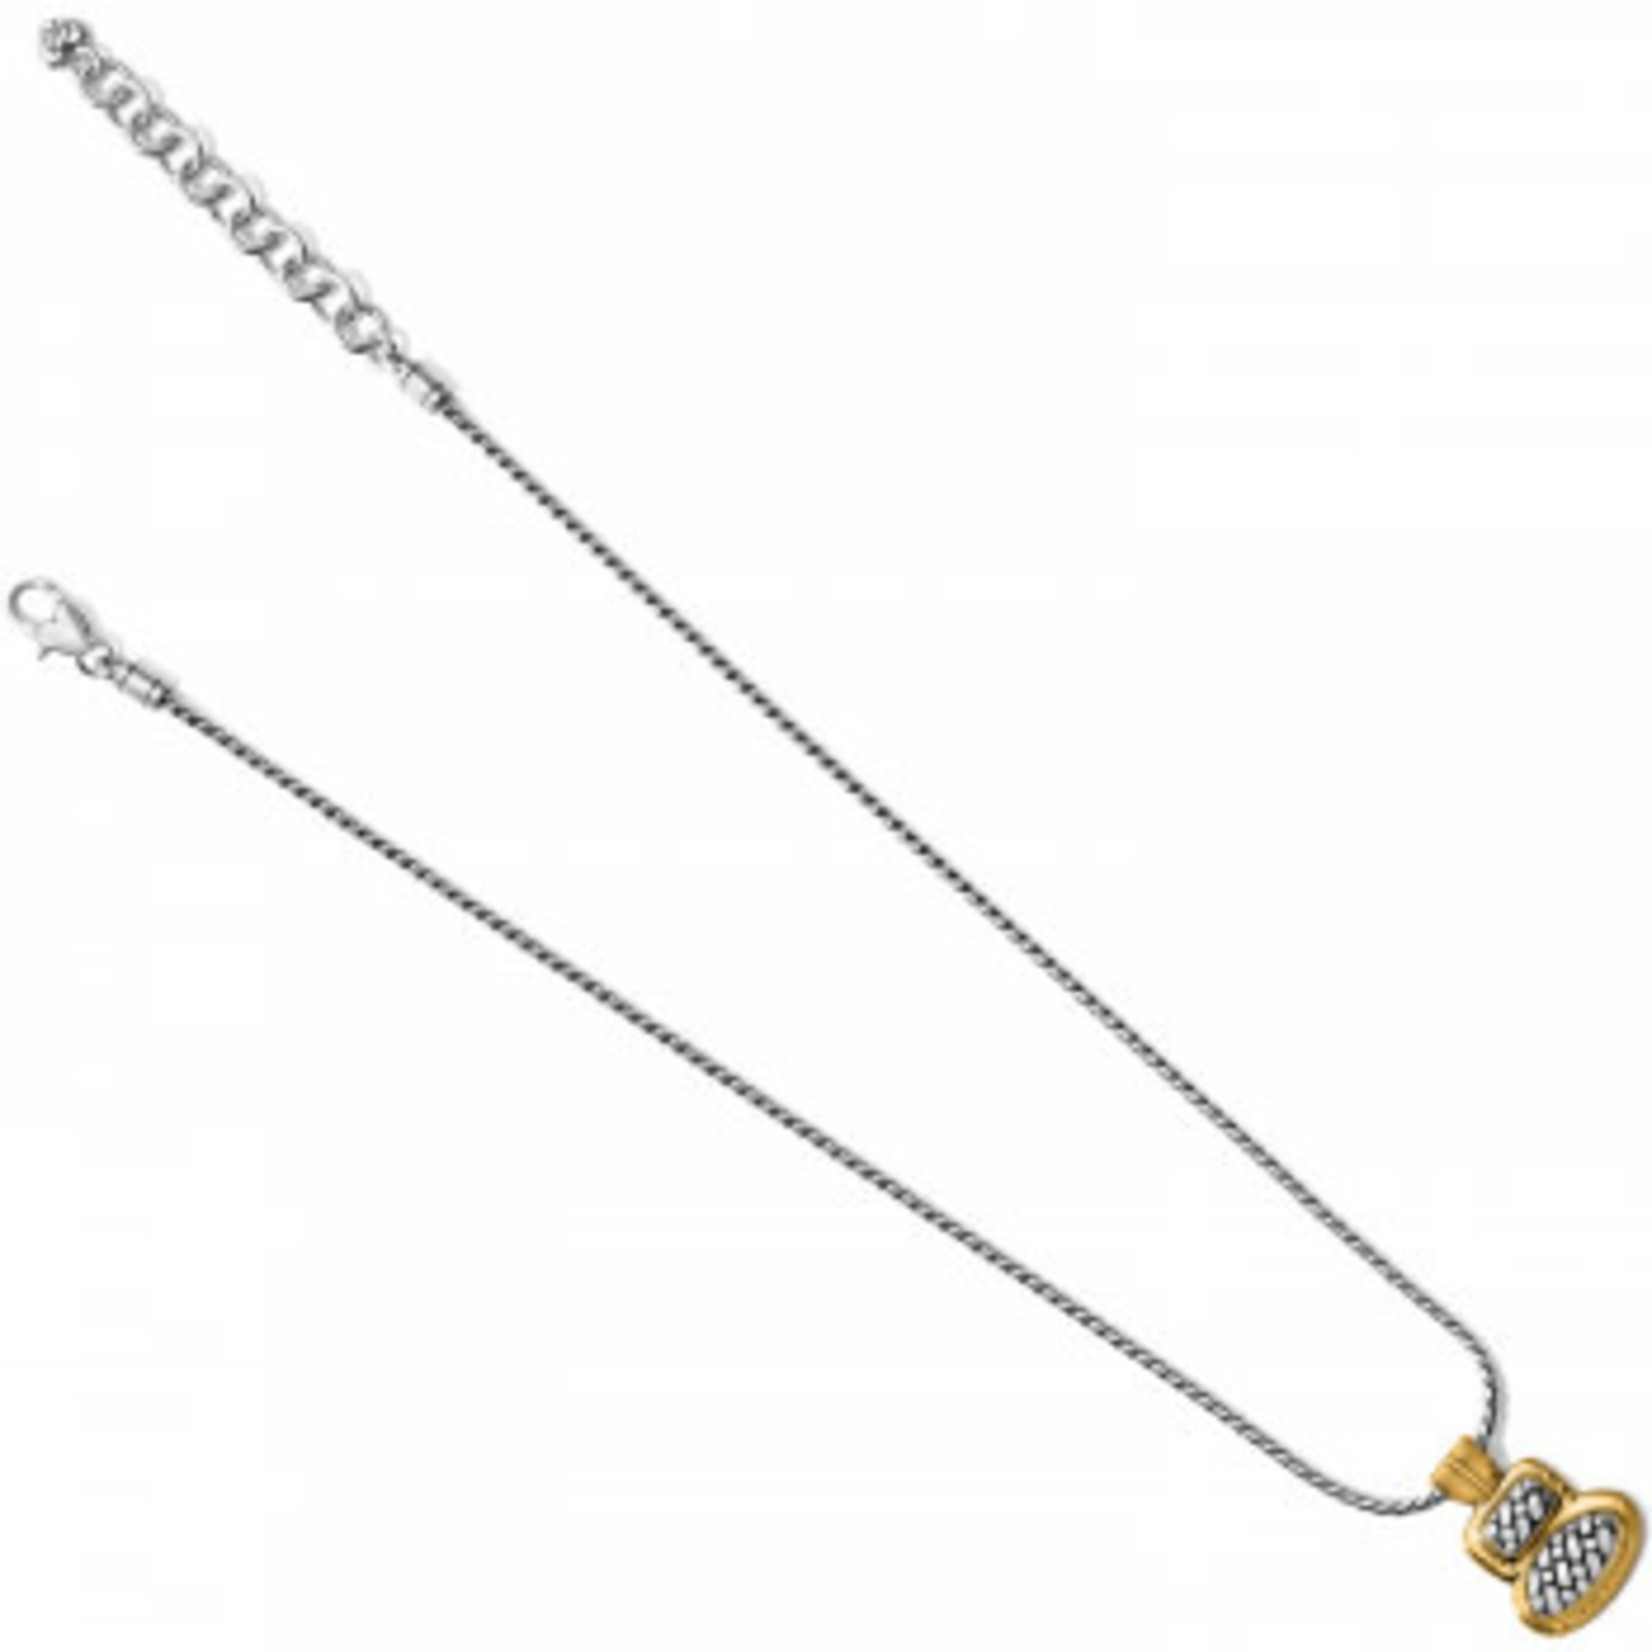 Brighton Ferrara Artisan Two Tone Duo Necklace Silver-Gold